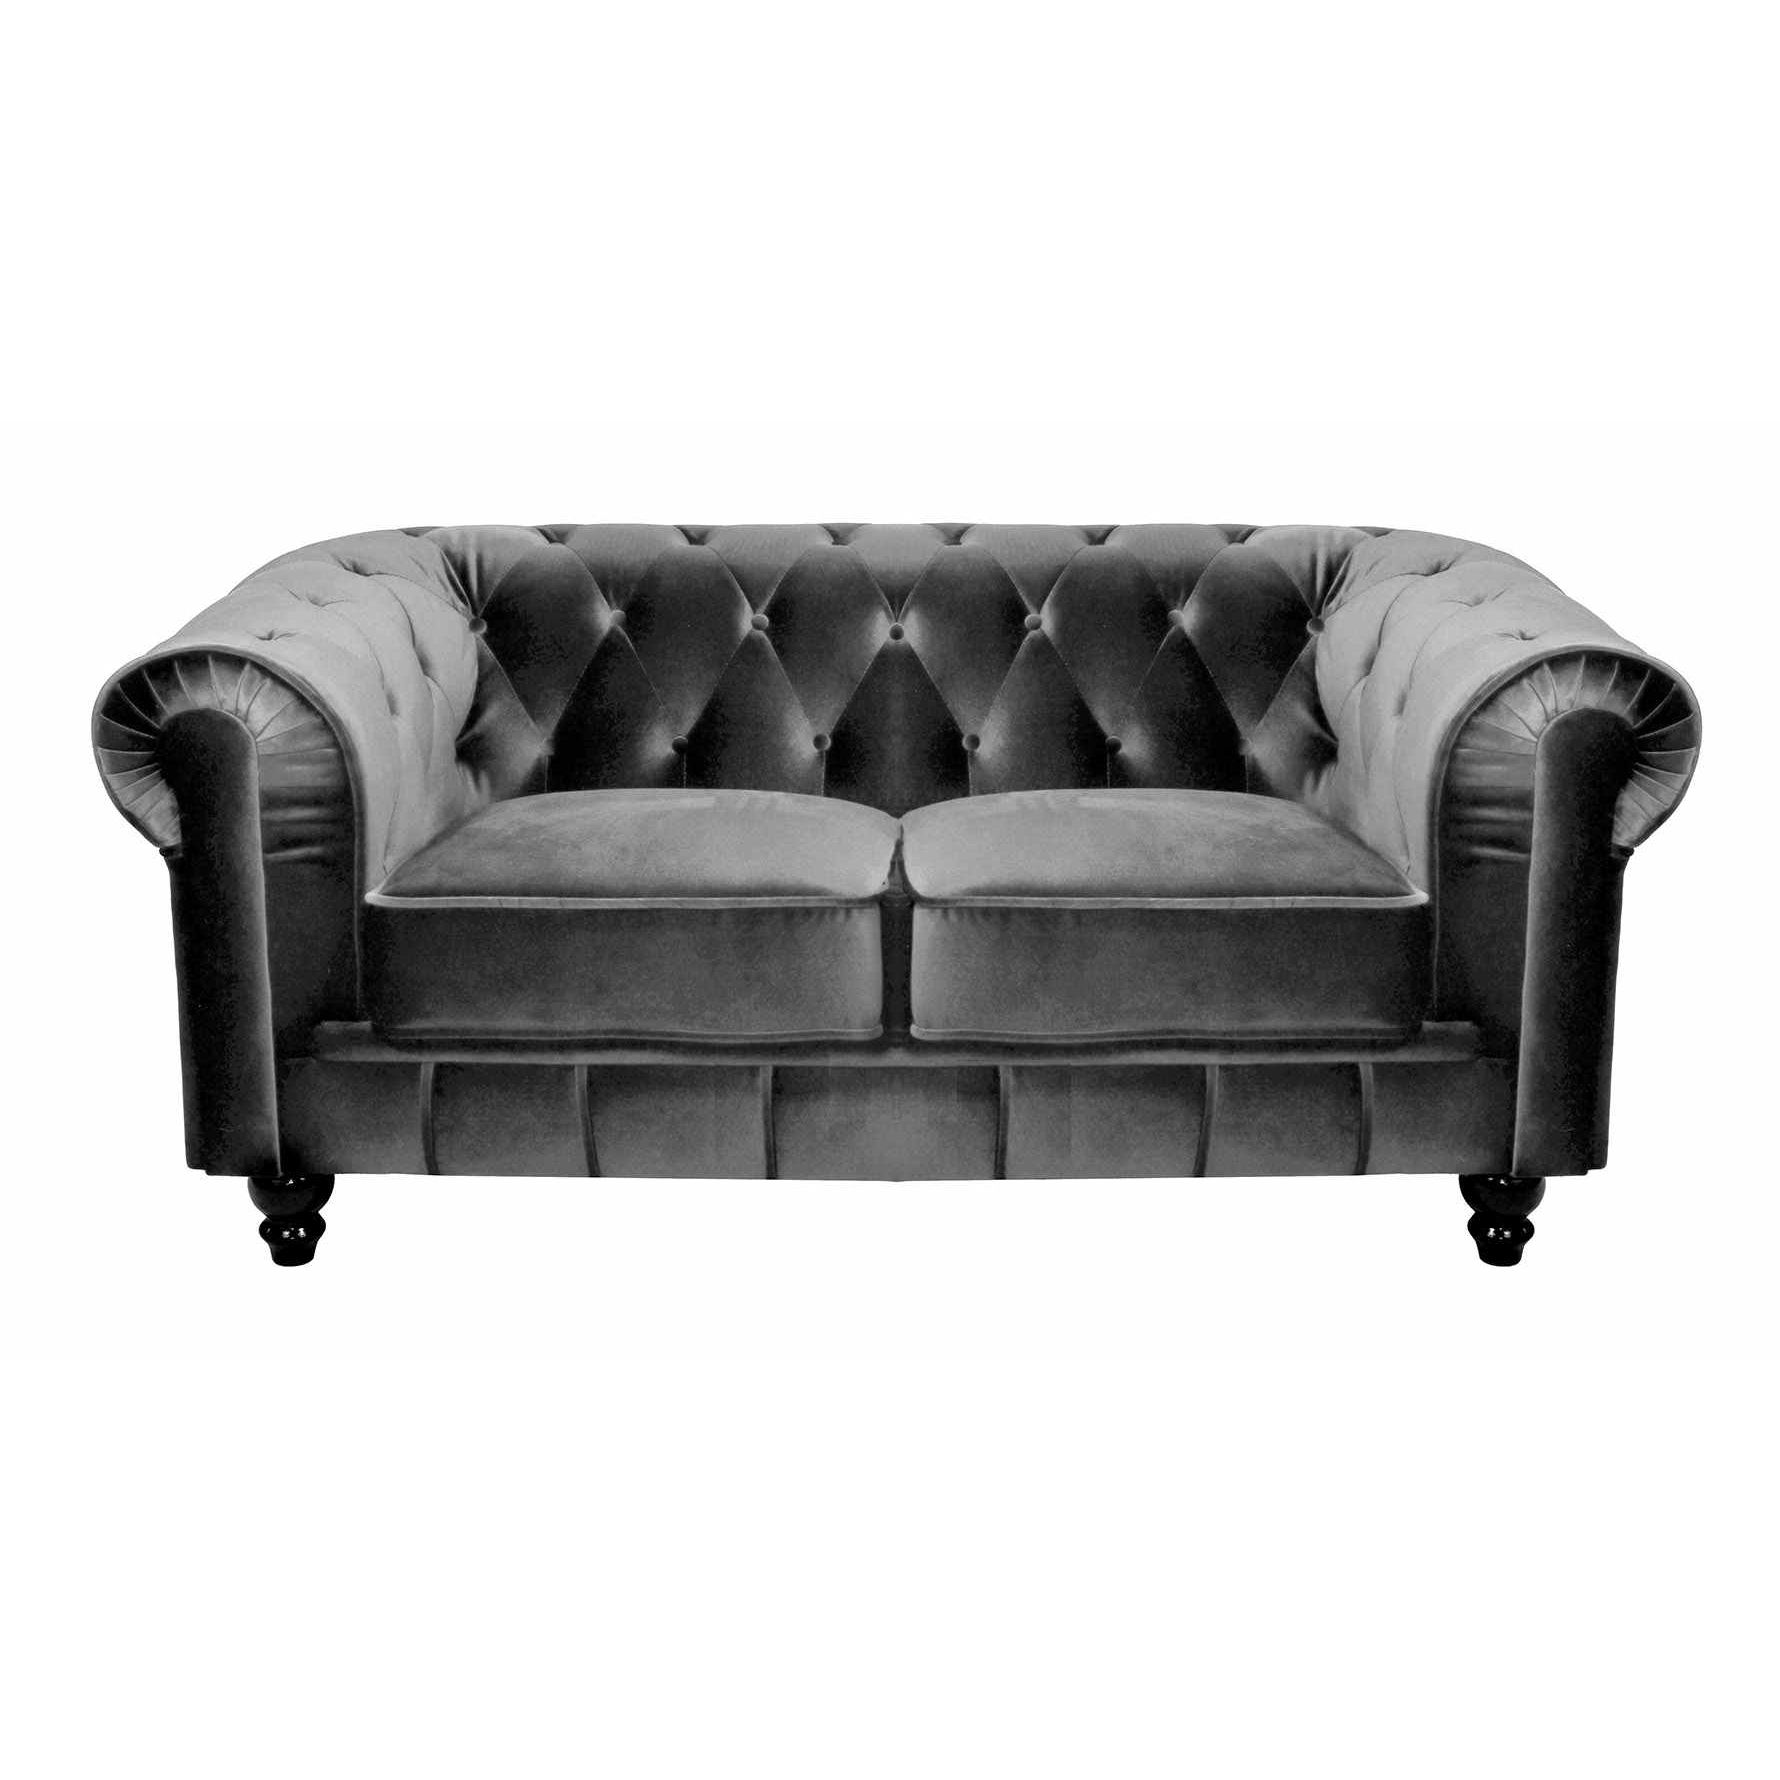 Deco in paris canape 2 places velours gris chesterfield - Canape chesterfield tissu gris ...